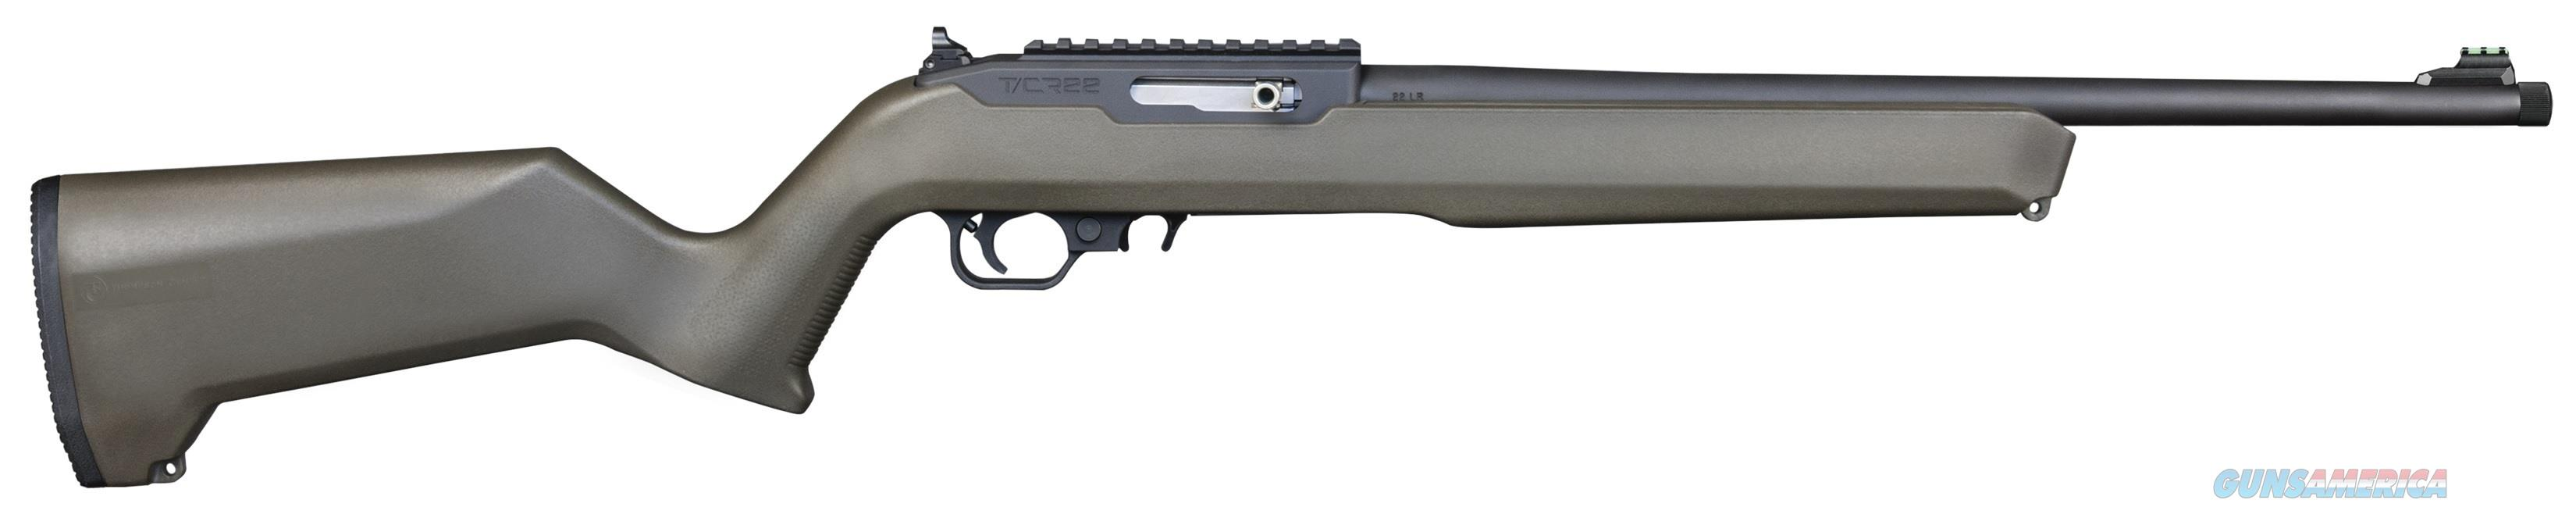 "Thompson Center T/CR22 .22 LR 17"" OD Green 10 Rds 12299   Guns > Rifles > Thompson Center Rifles > Dimension"